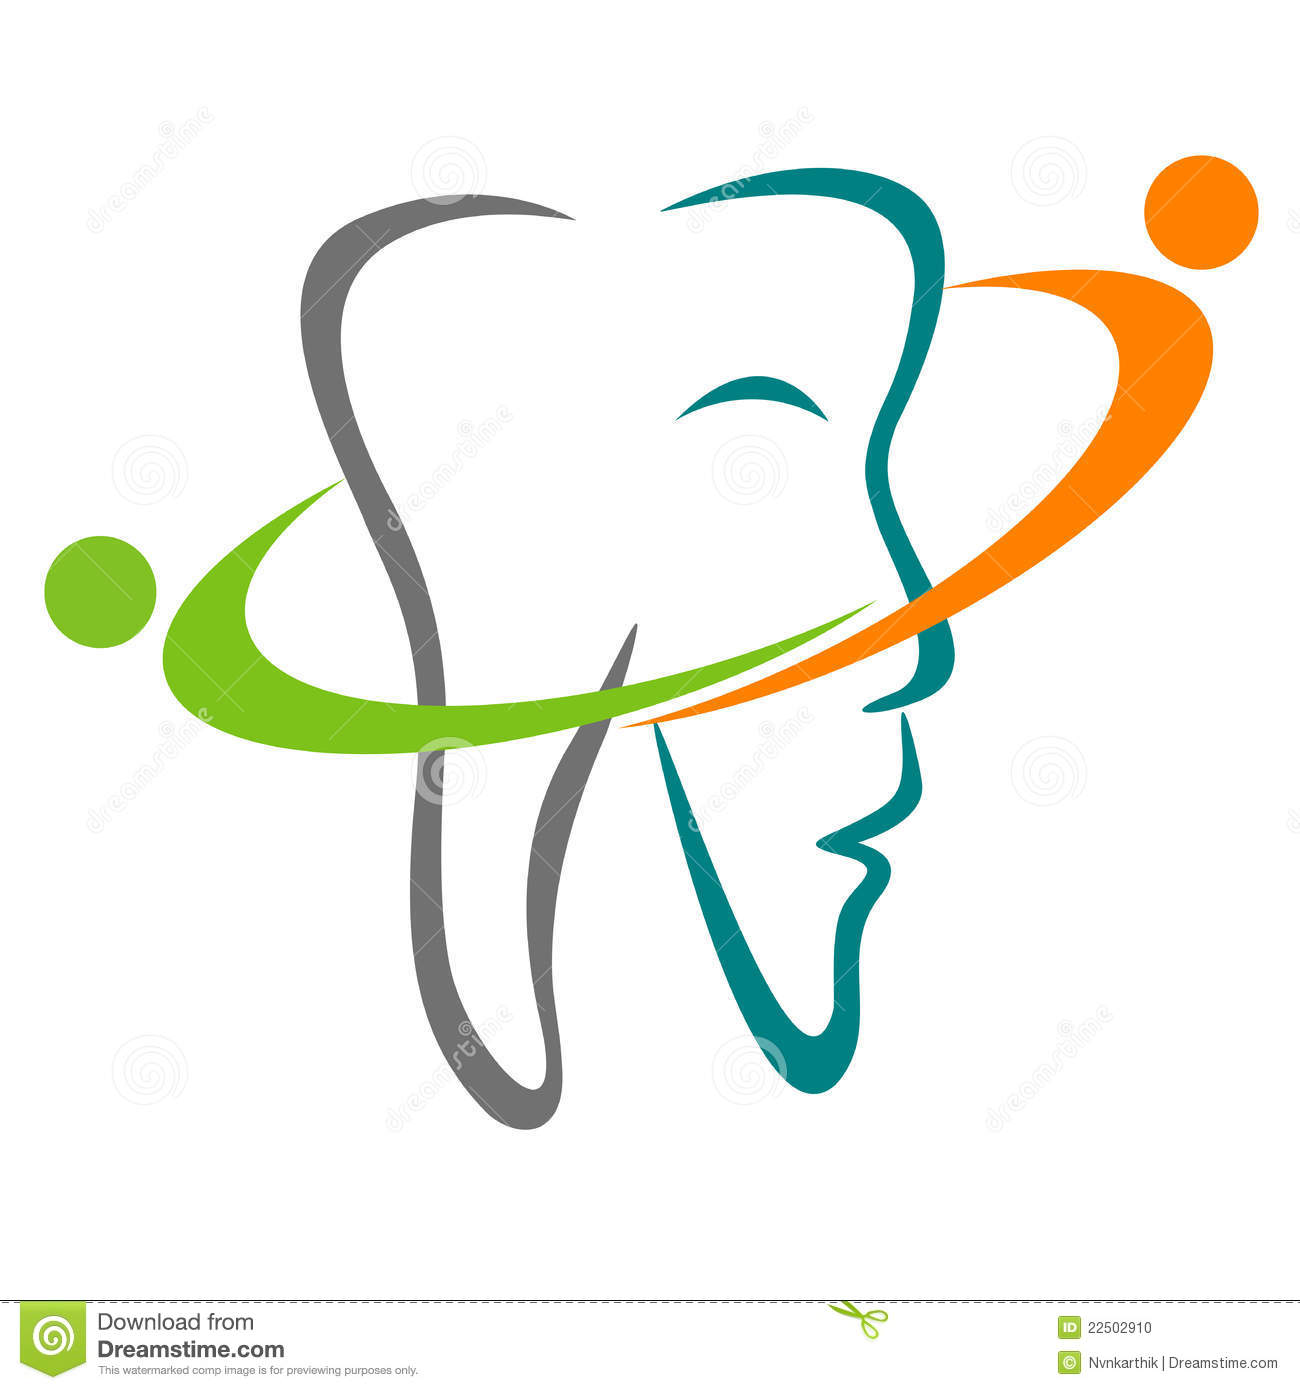 Dental Logo Stock Illustrations 17 207 Dental Logo Stock Illustrations Vectors Clipart Dreamstime